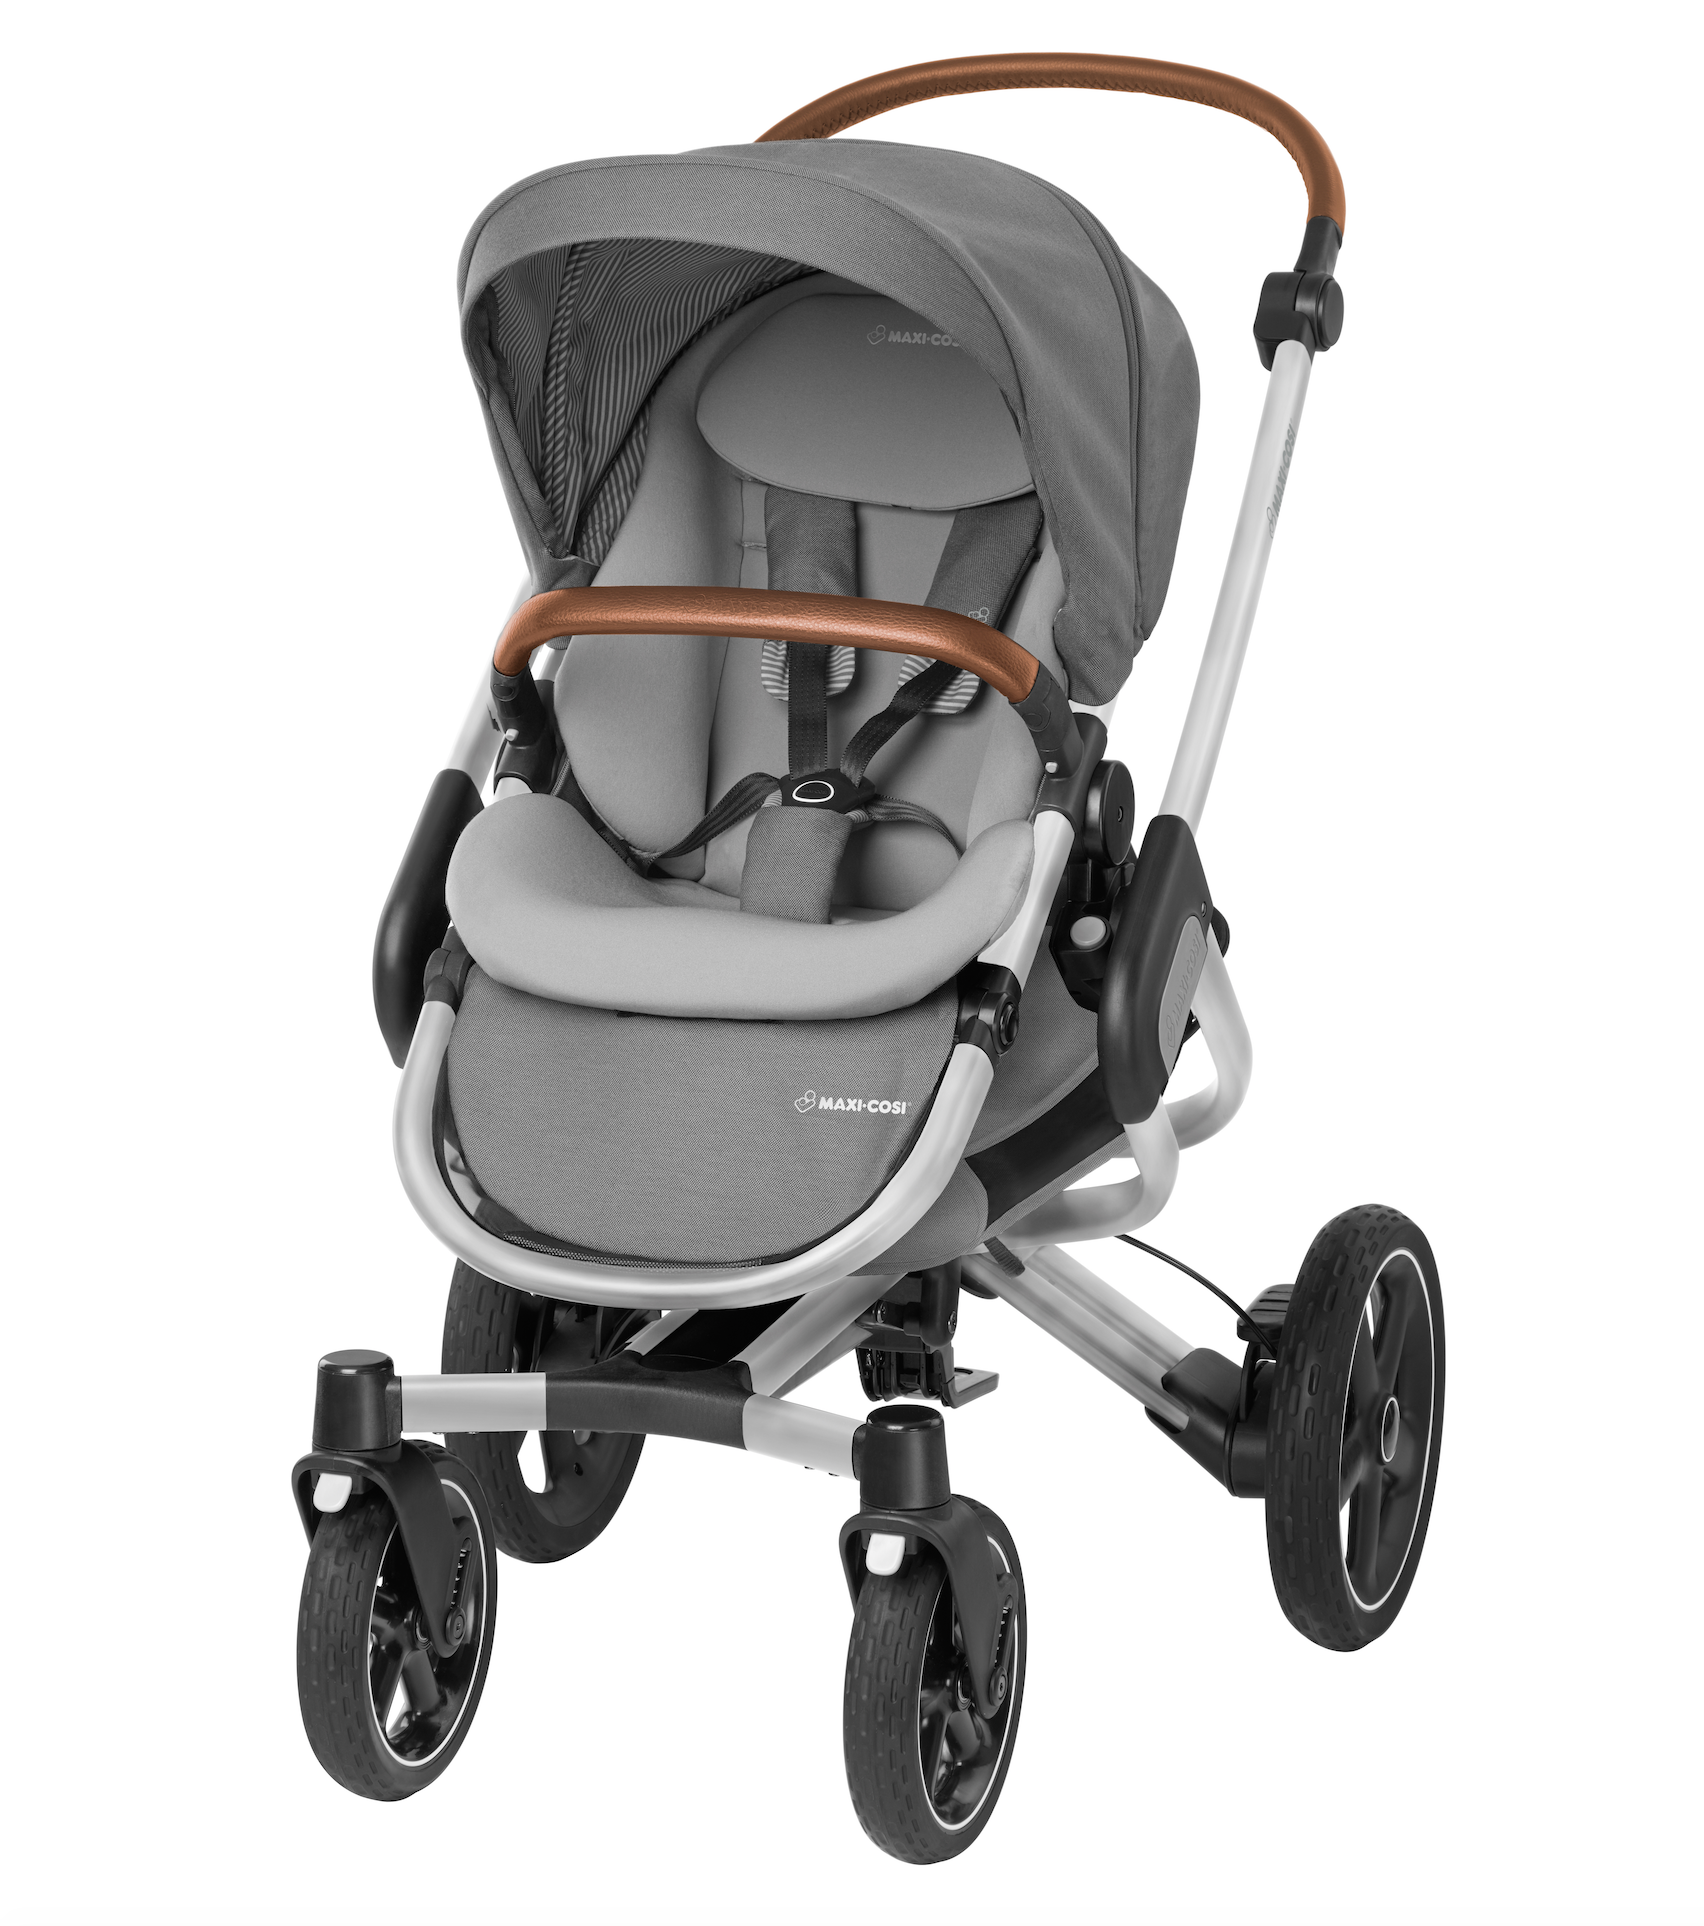 maxi cosi nova sparkling grey little angels prams. Black Bedroom Furniture Sets. Home Design Ideas